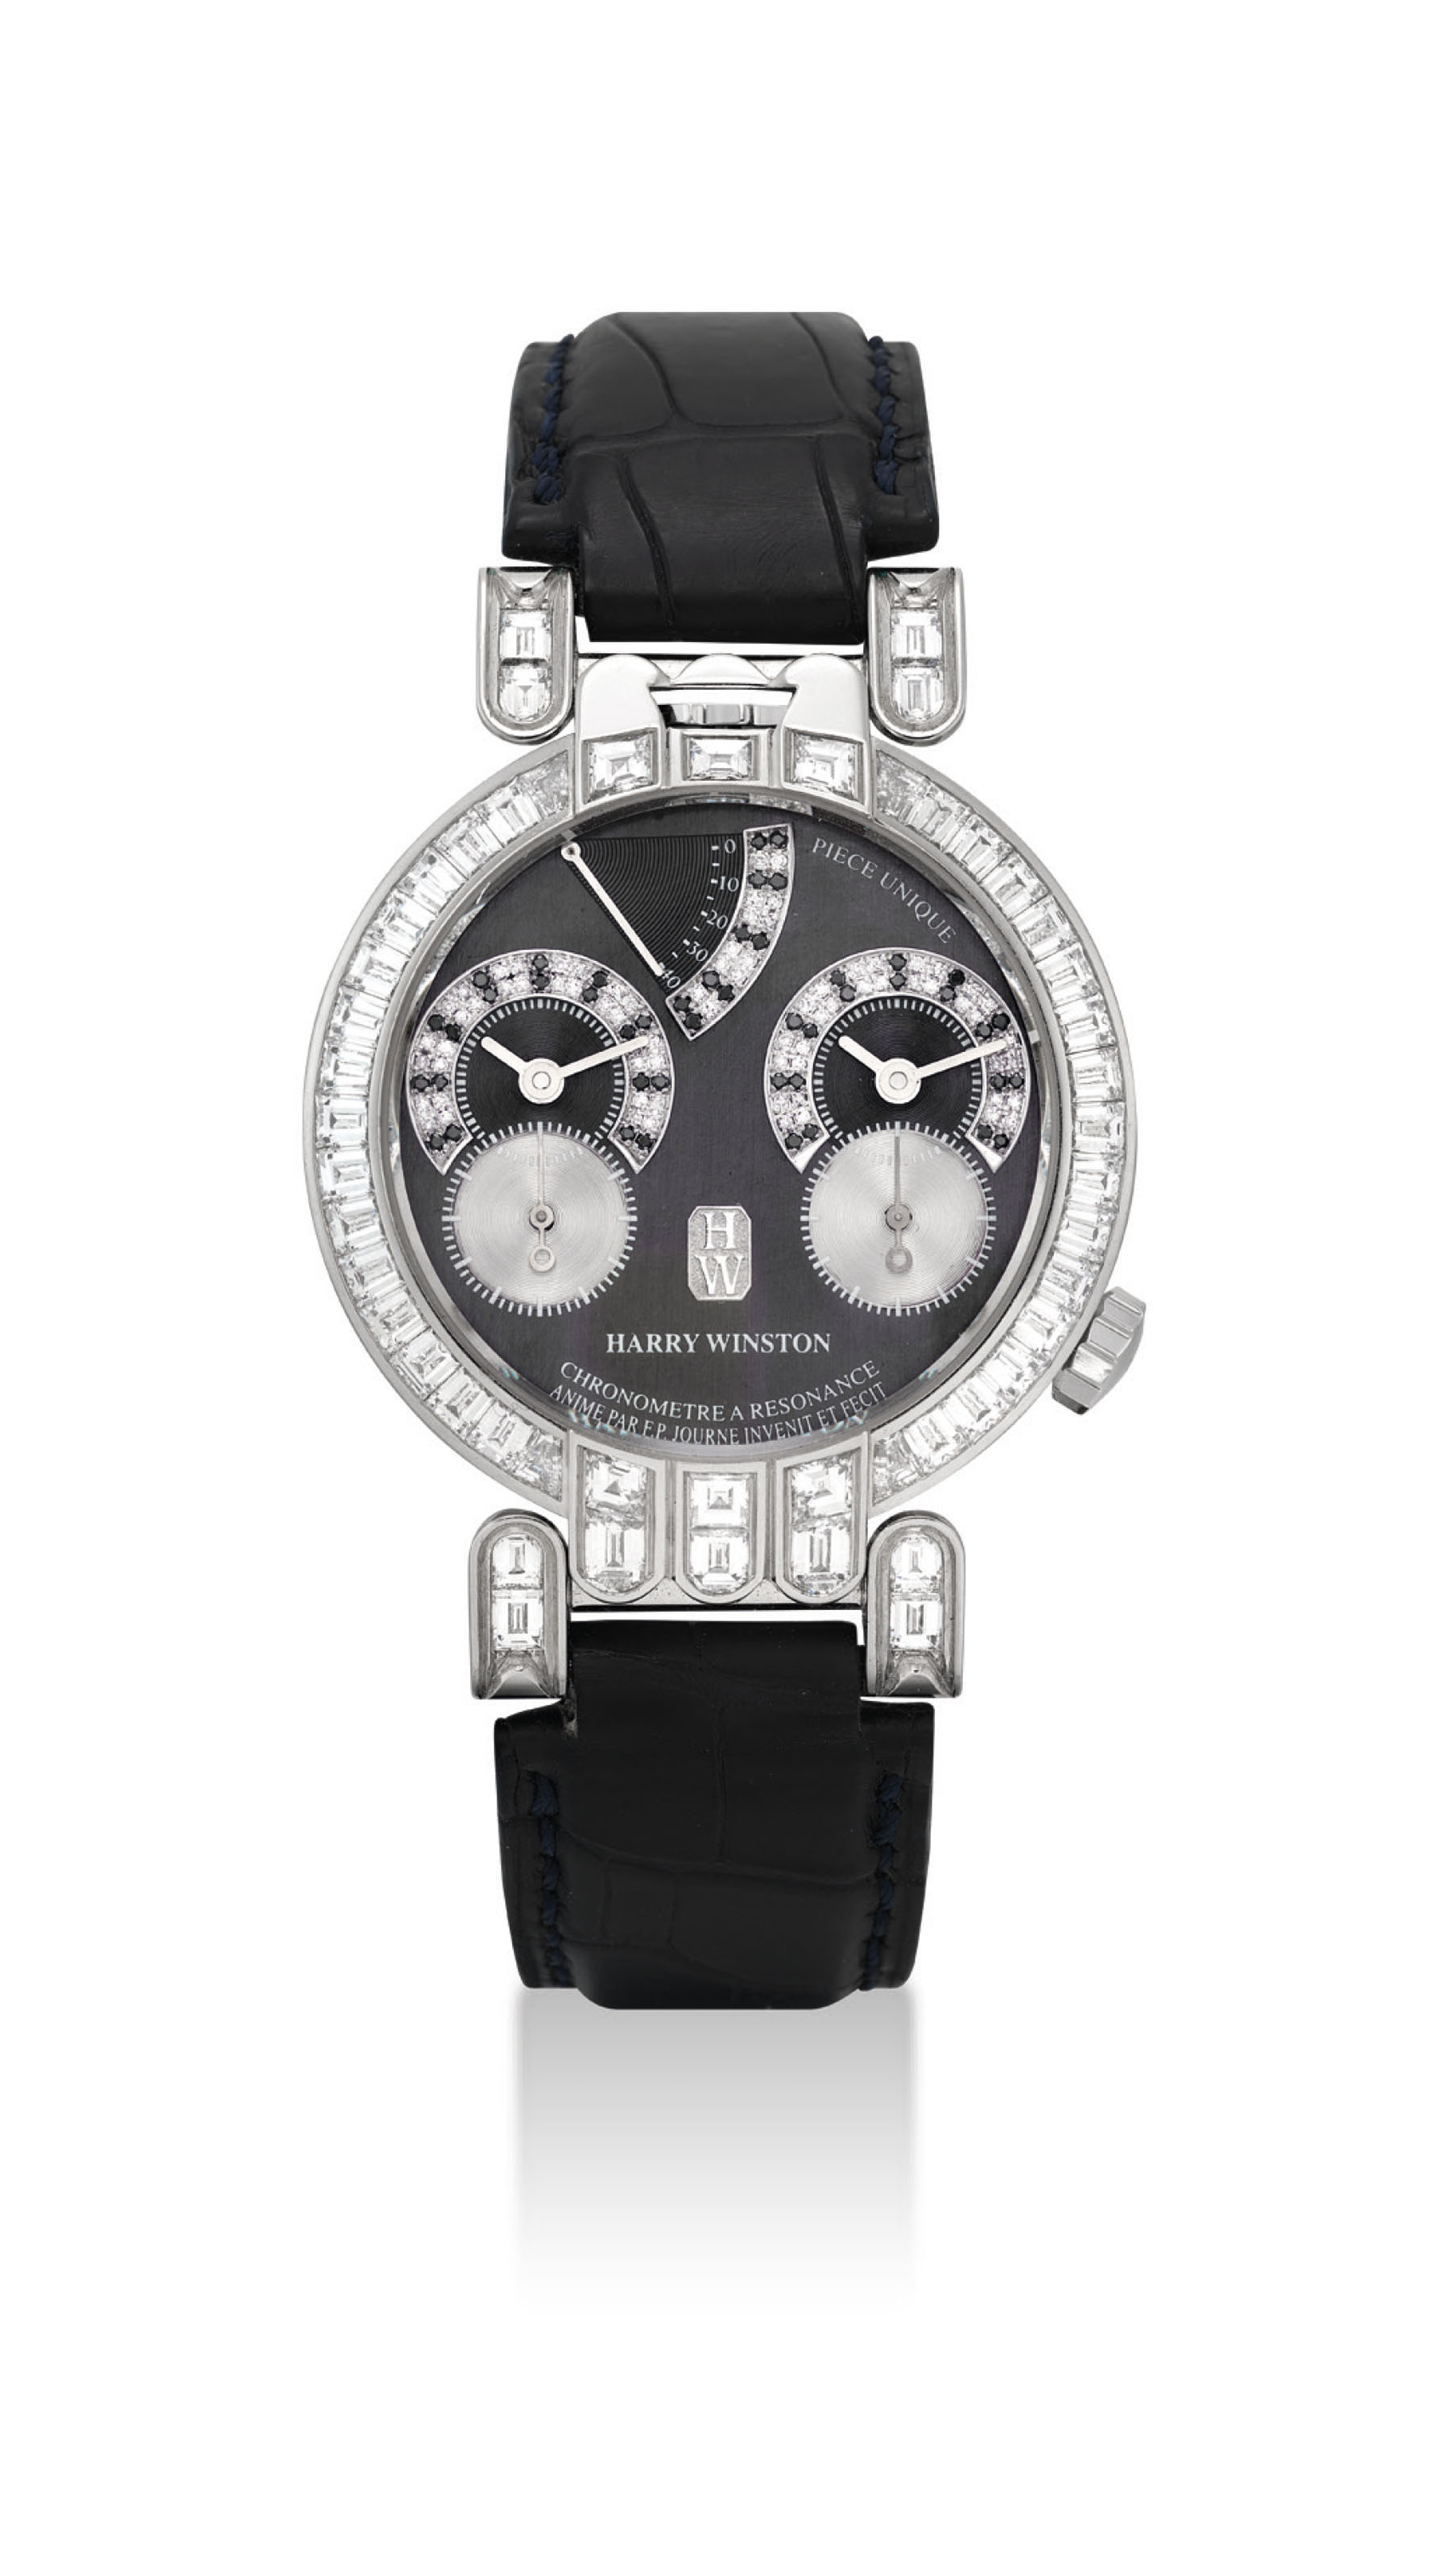 HARRY WINSTON & F.P. JOURNE. A UNIQUE AND EXTREMELY FINE PLATINUM, DIAMOND AND BLACK DIAMOND-SET DUAL TIME CHRONOMETER WRISTWATCH WITH RESONANCE-CONTROLLED TWIN INDEPENDENT GEAR-TRAIN MOVEMENT AND POWER RESERVE